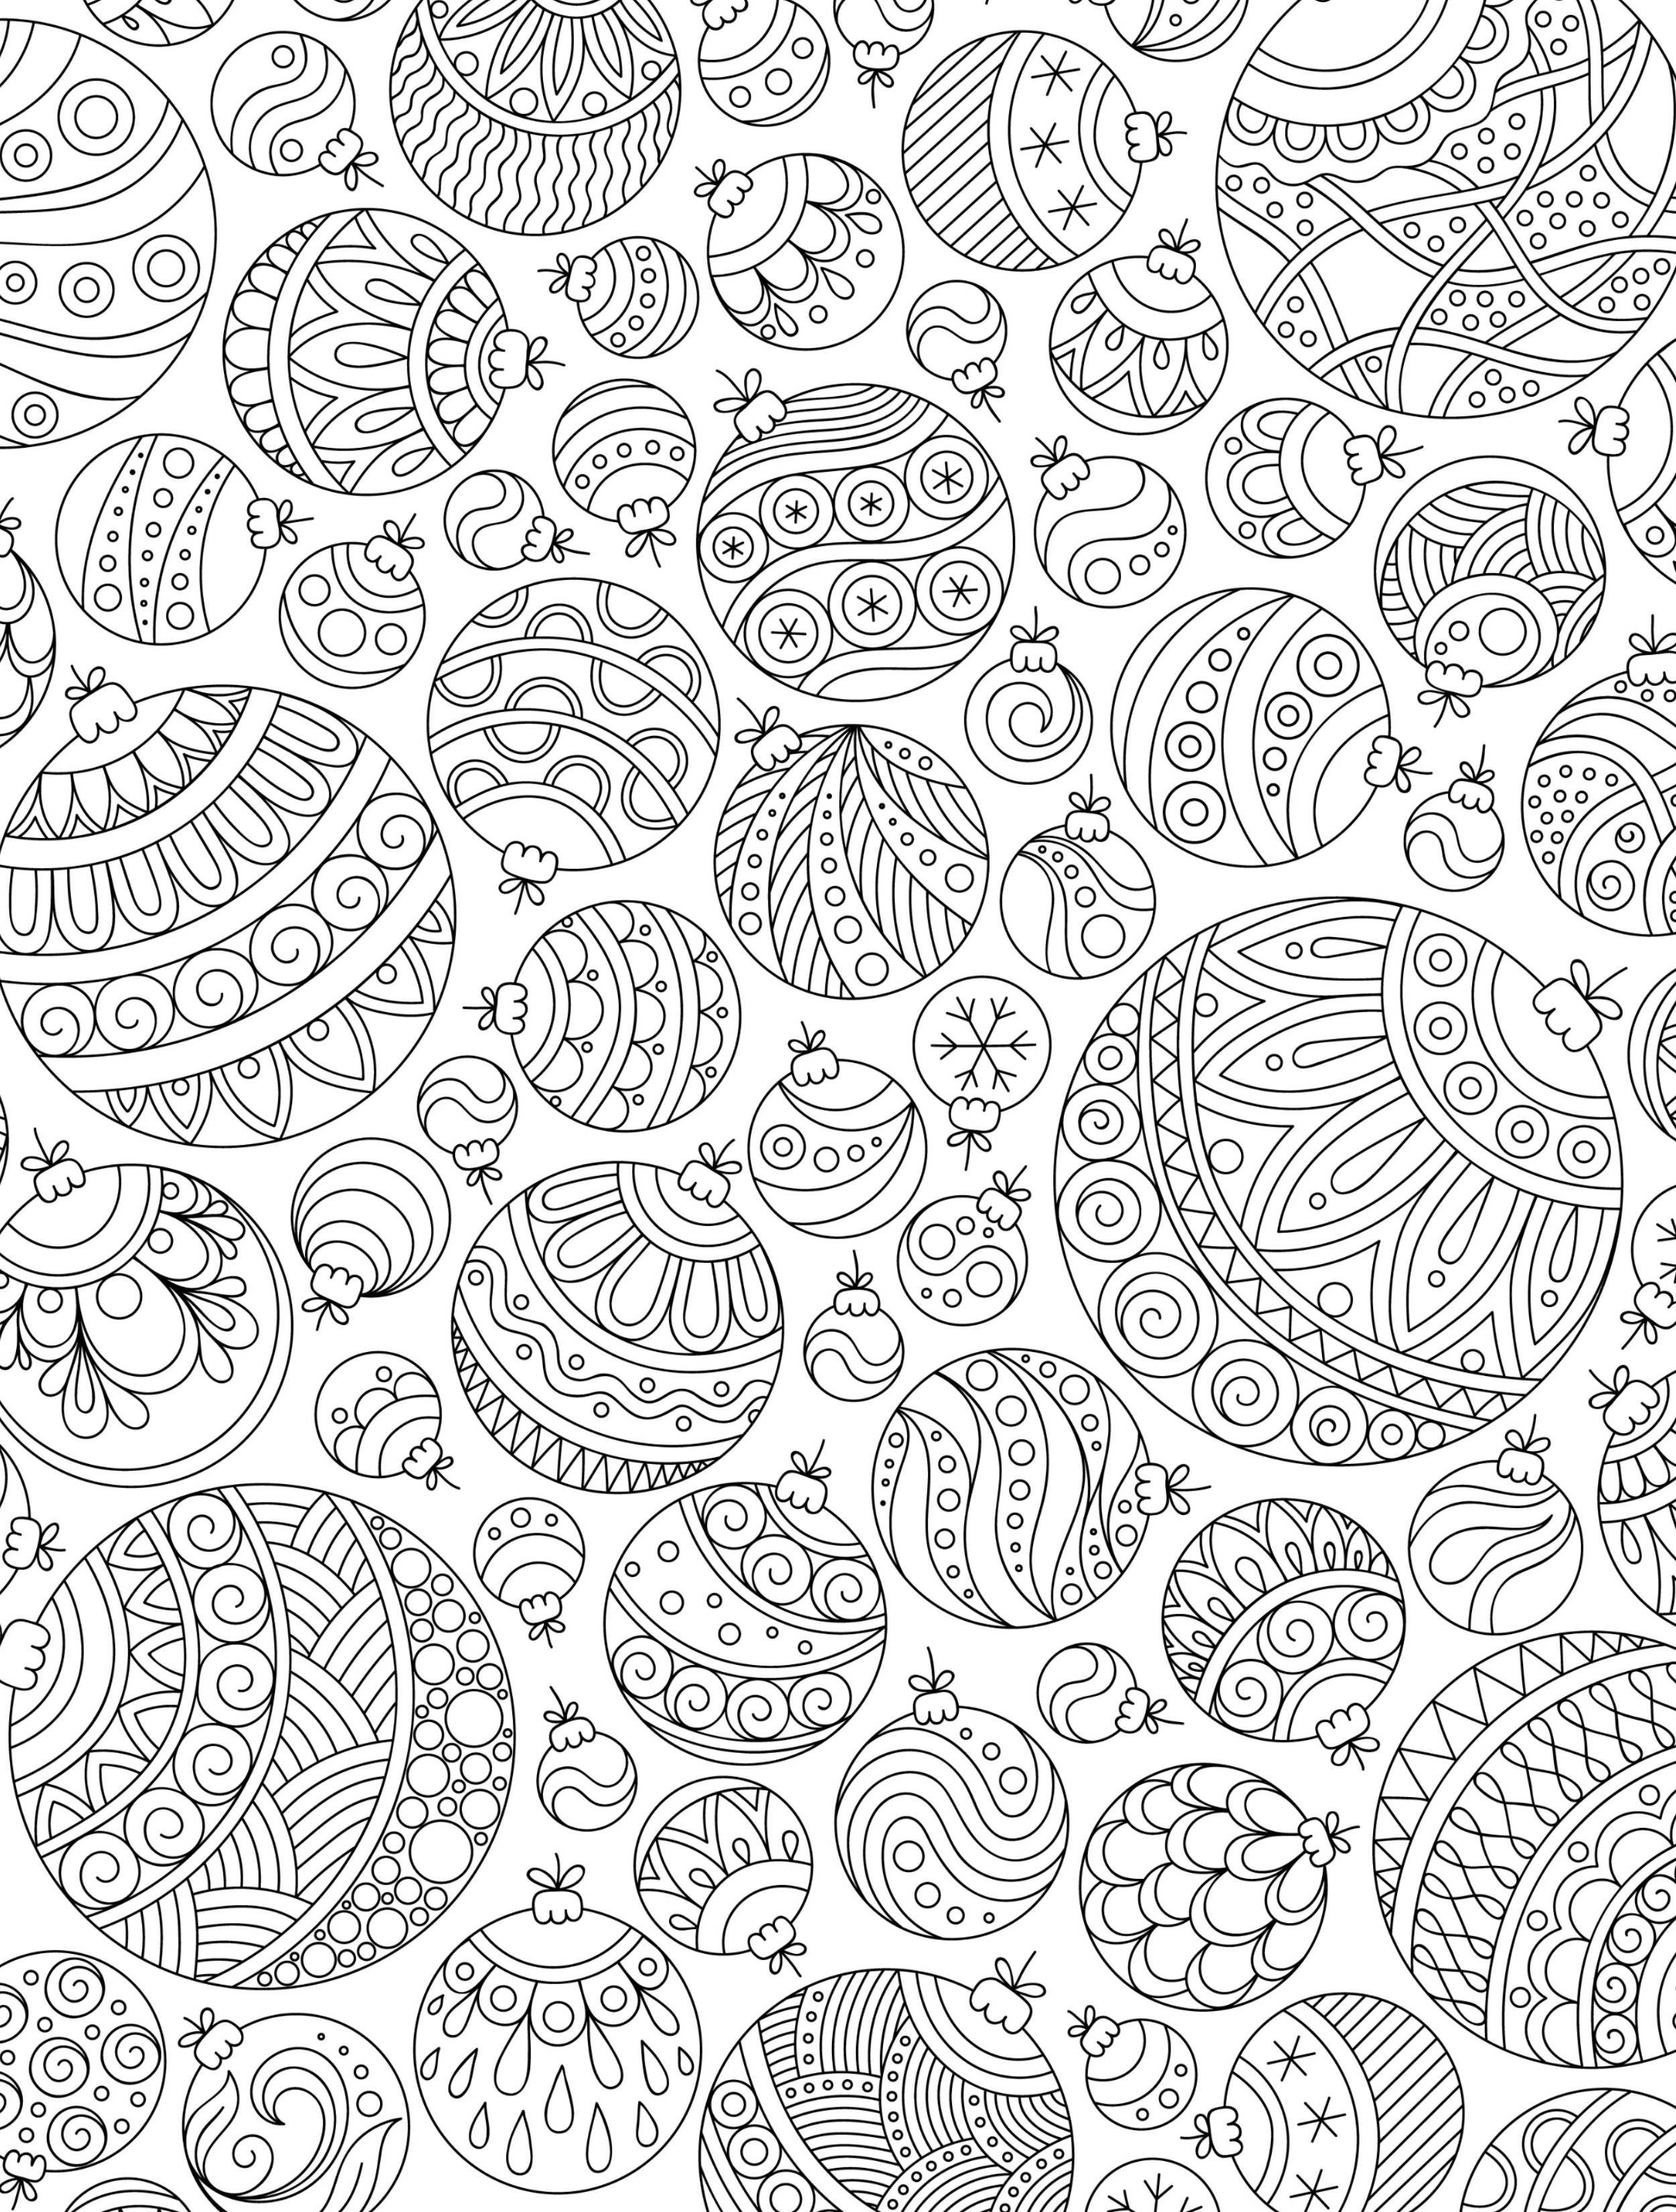 free downloadable busy coloring pages for adults upload | coloring ...